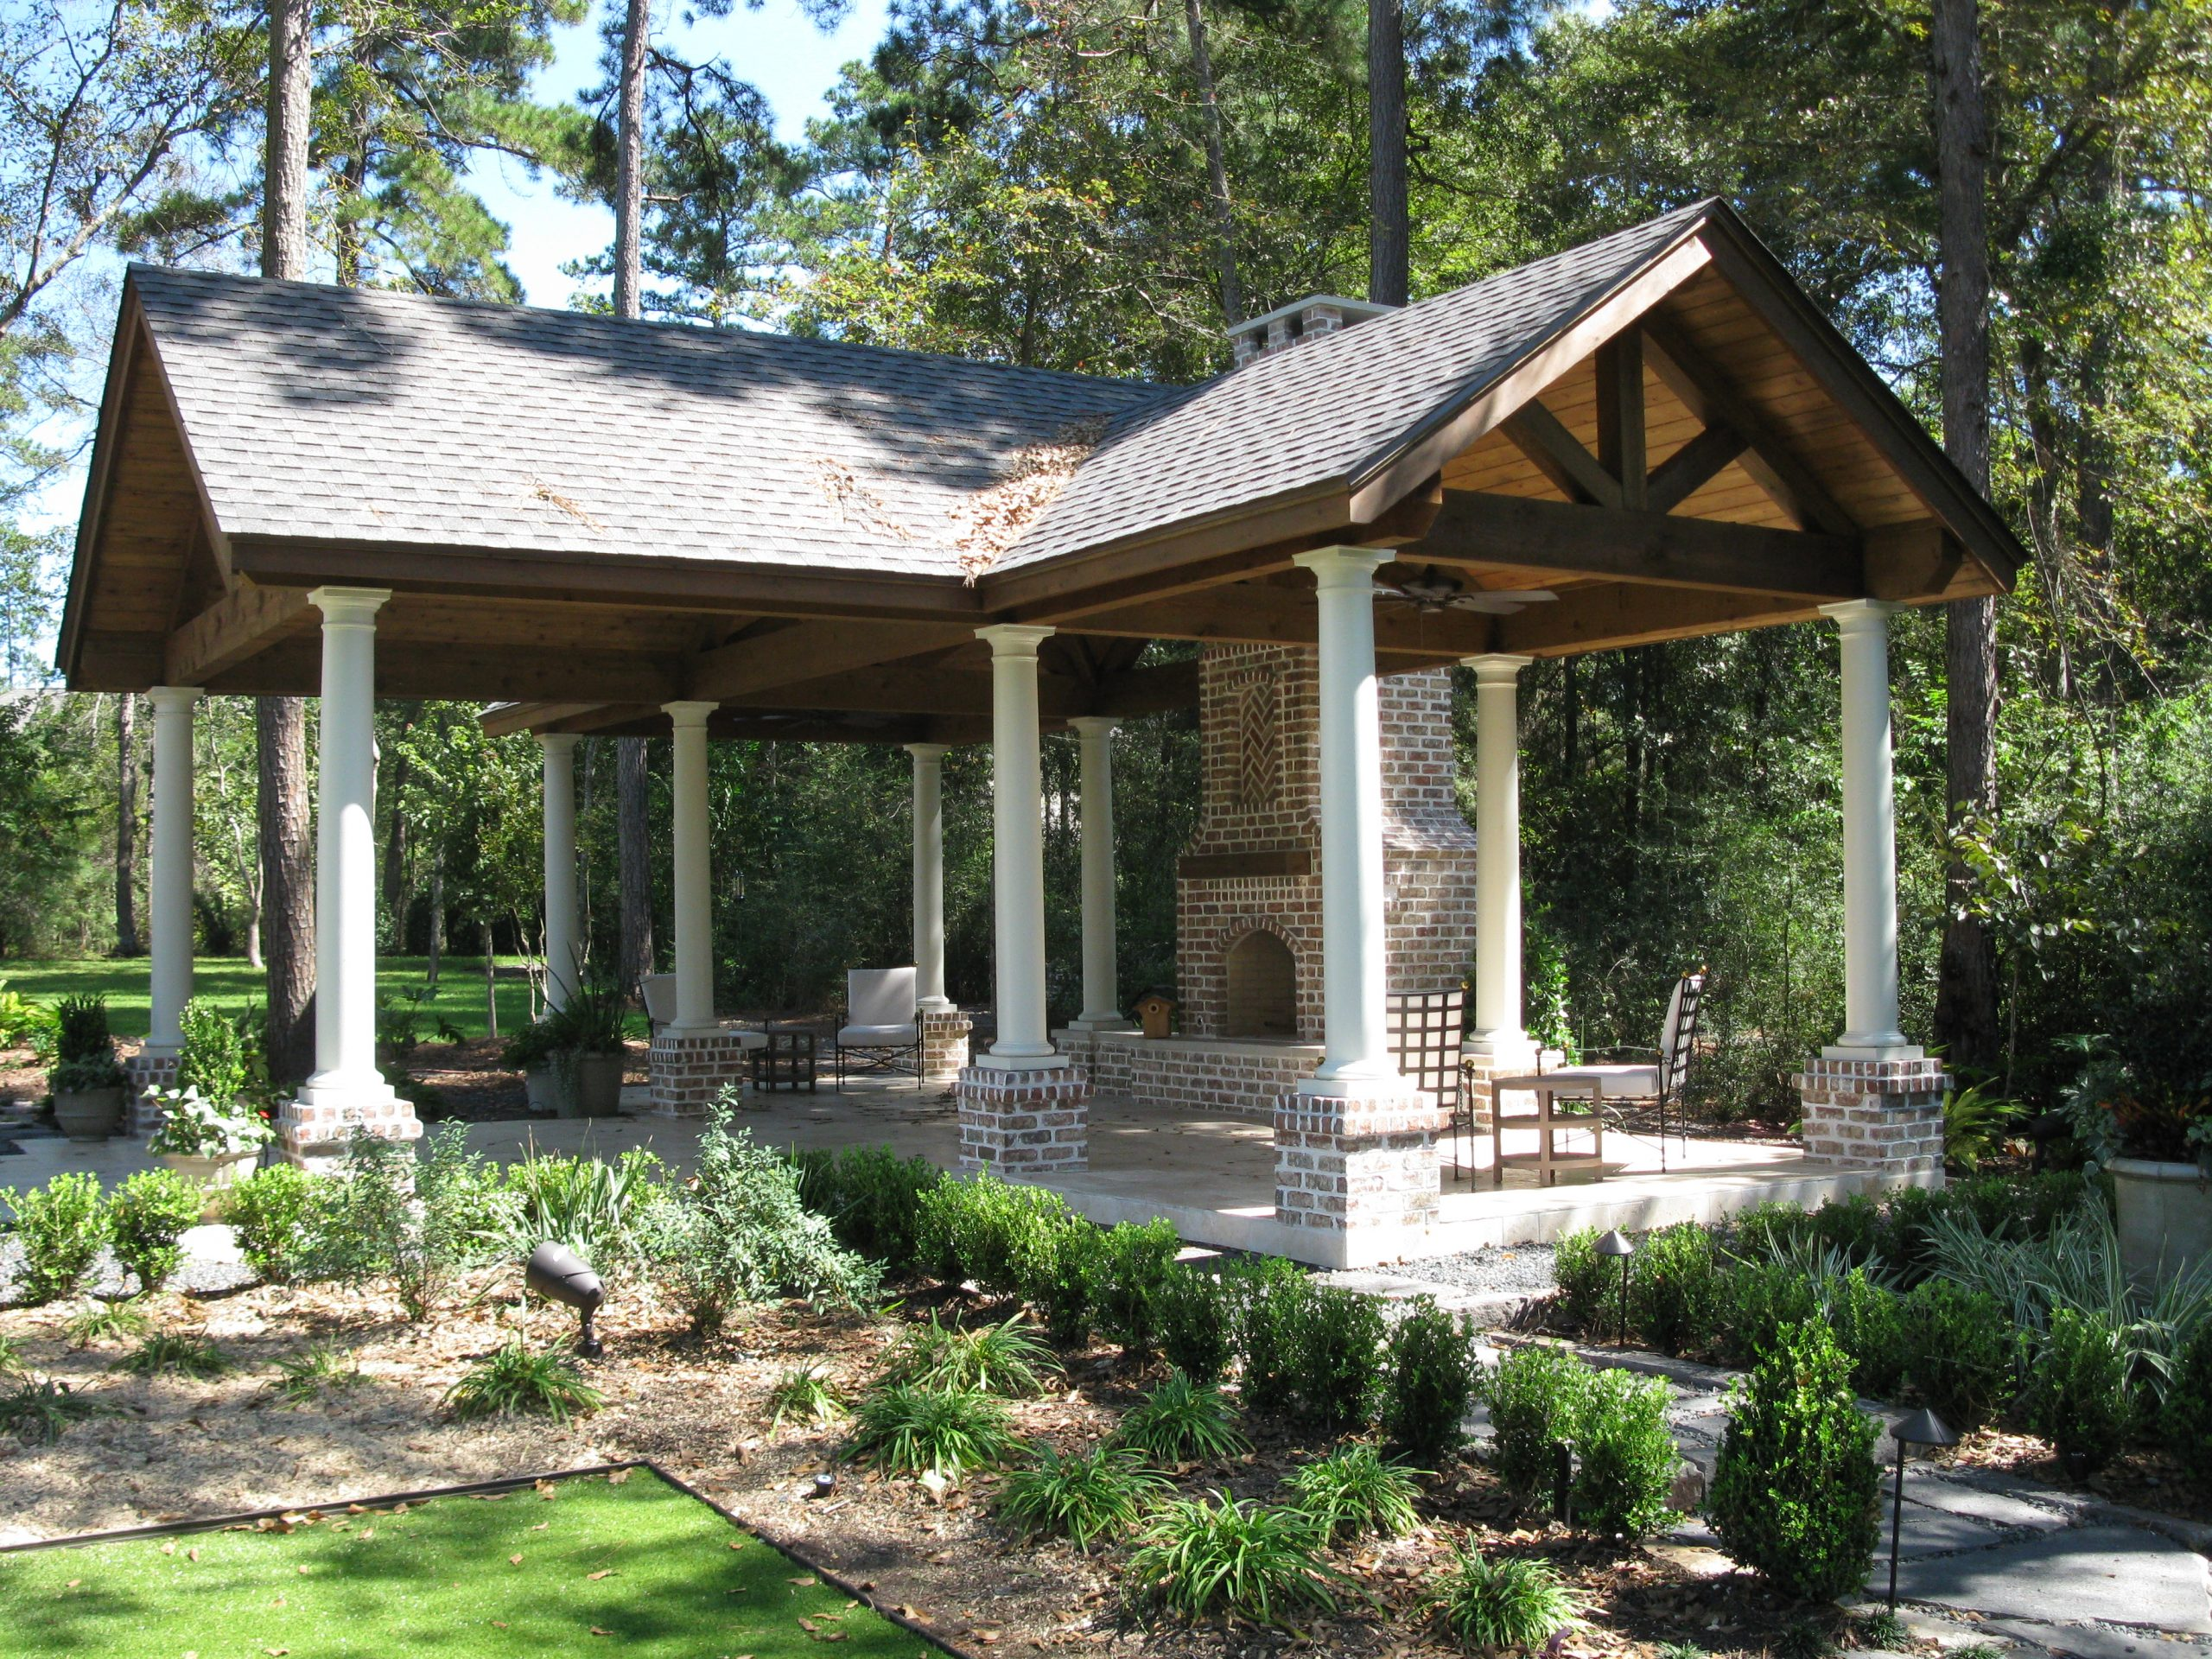 Side view of beautiful custom timber truss covered patio and landscaping.